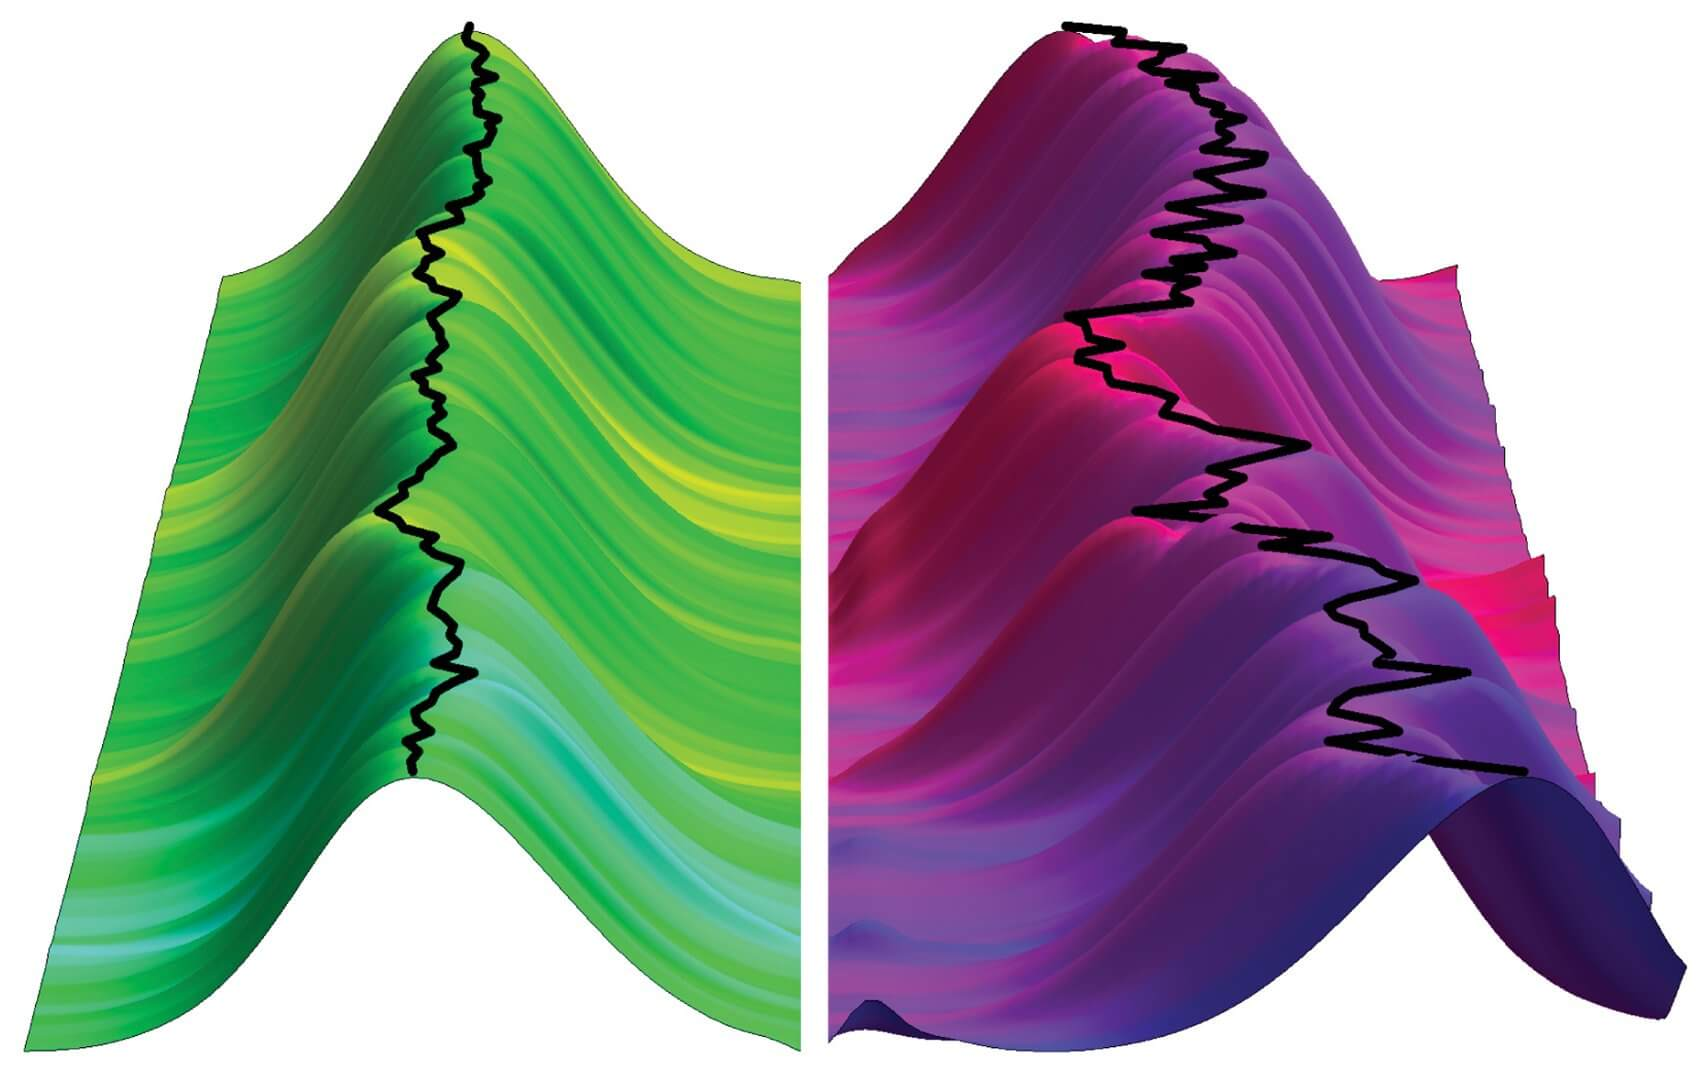 These green and purple hills represent the average activity for many neurons in two different brain regions. These neuronal activity patterns will differ from time to time, even in response to exactly the same sensory stimulus, and those differences set the limit for how well the brain can sense things. (Credit: Xaq Pitkow/Rice University)